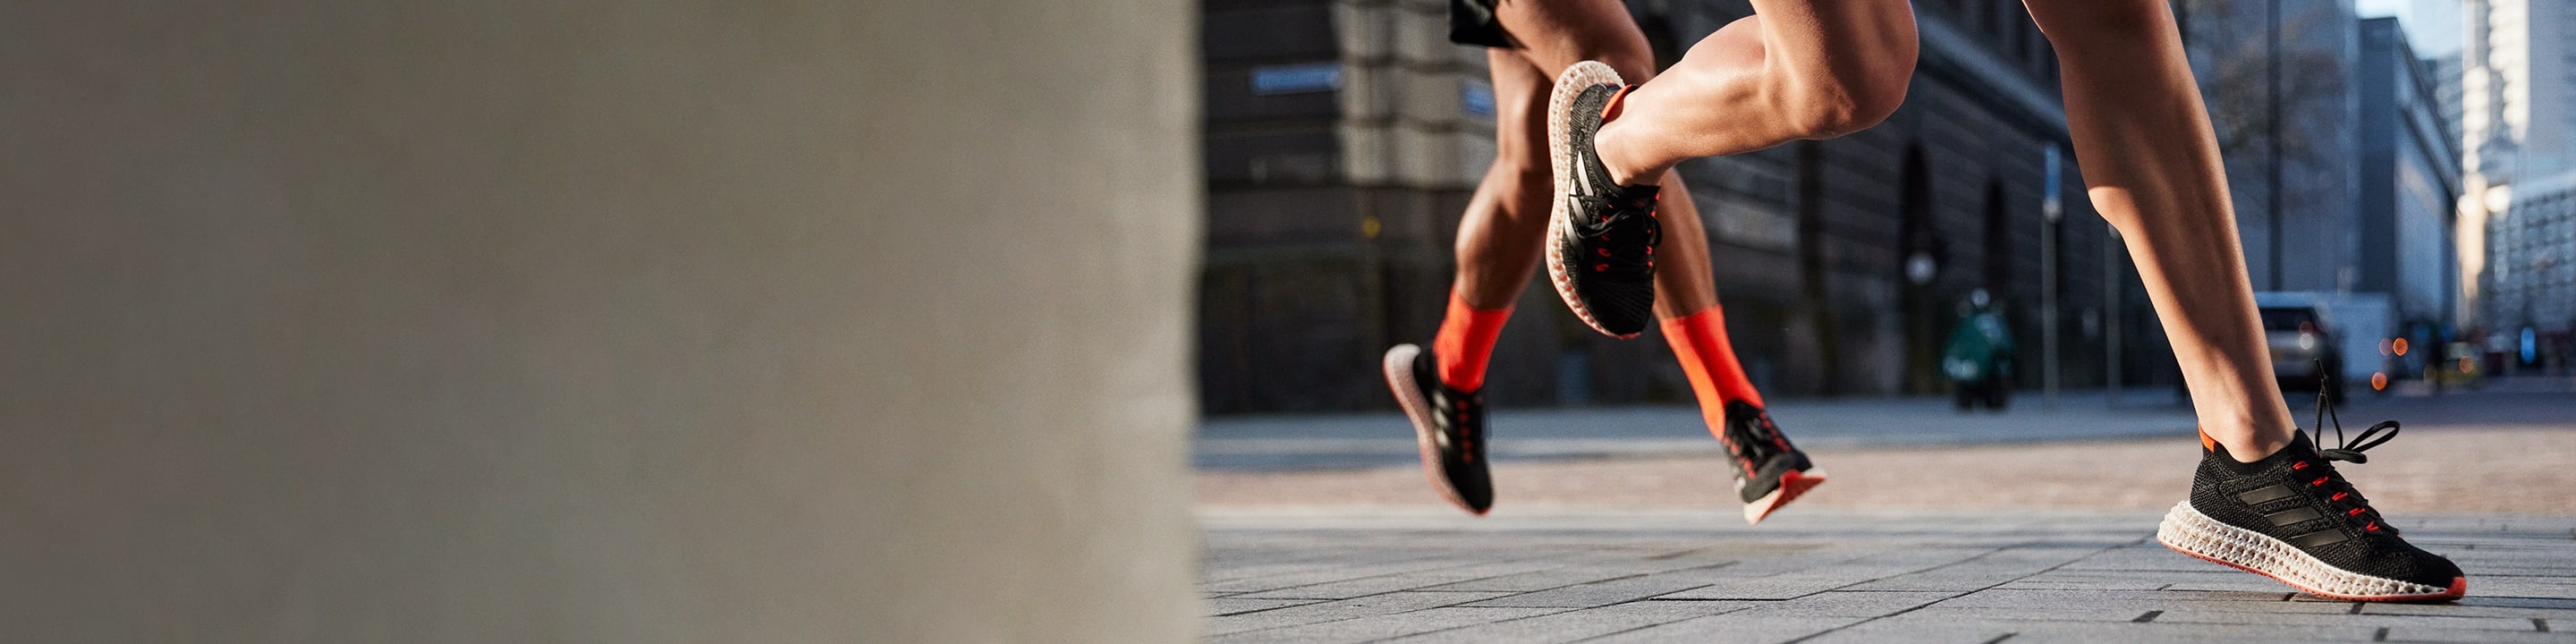 Close-up of two people wearing the new 4DFWD running shoe while running on a city street.